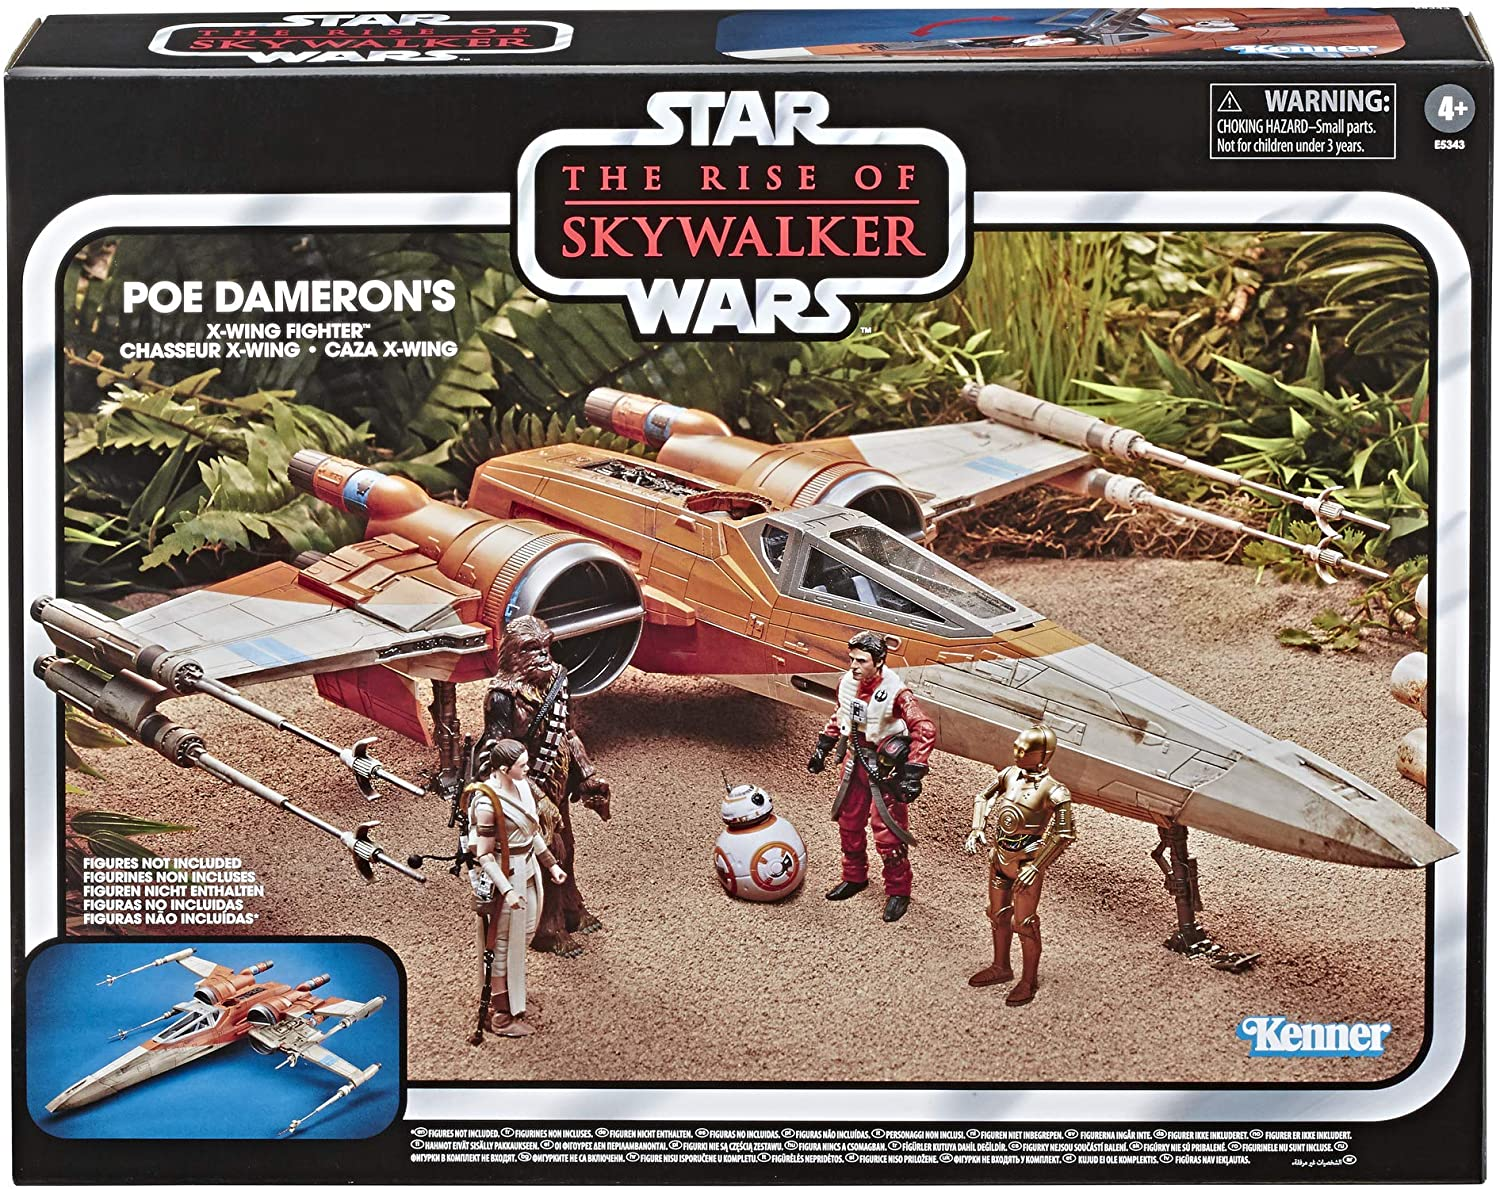 Amazon Com Star Wars The Vintage Collection The Rise Of Skywalker Poe Dameron S X Wing Fighter Toy Vehicle Toys For Kids Ages 4 Up Toys Games